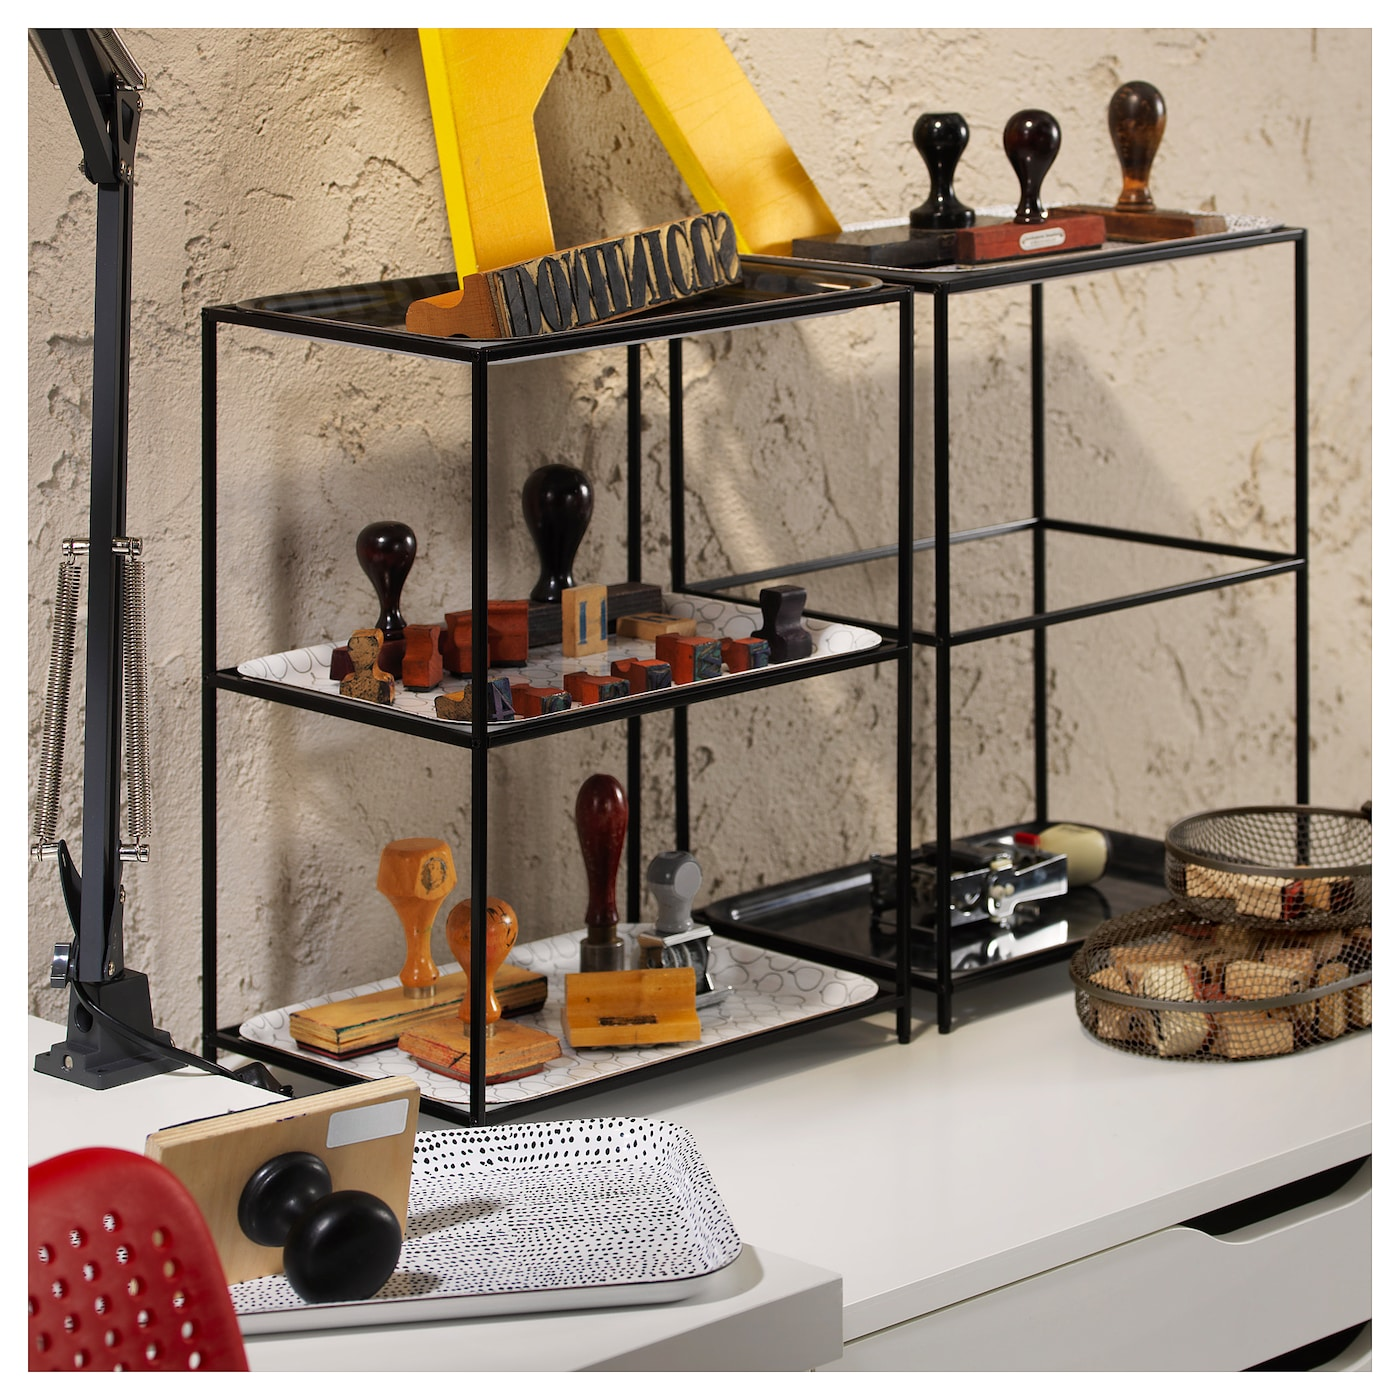 IKEA SAMMANHANG tray stand Stands steady even on an uneven surface as the feet can be adjusted.